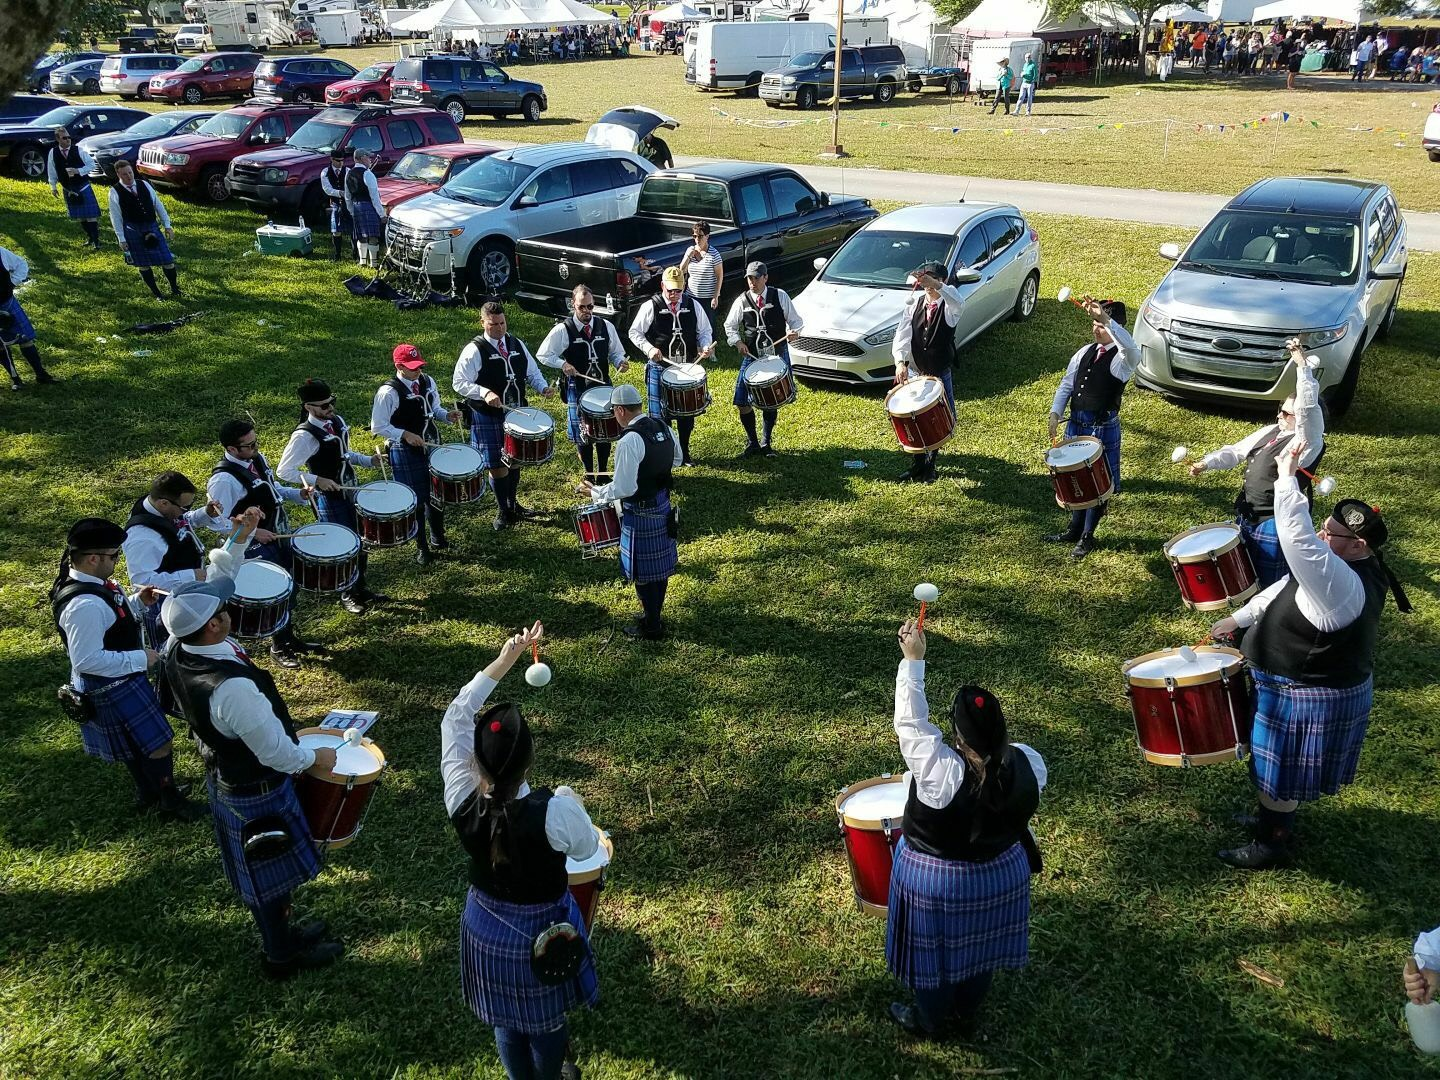 The City of Dunedin Pipe Band drum corps warming up at the Southeast Florida Highland Games.